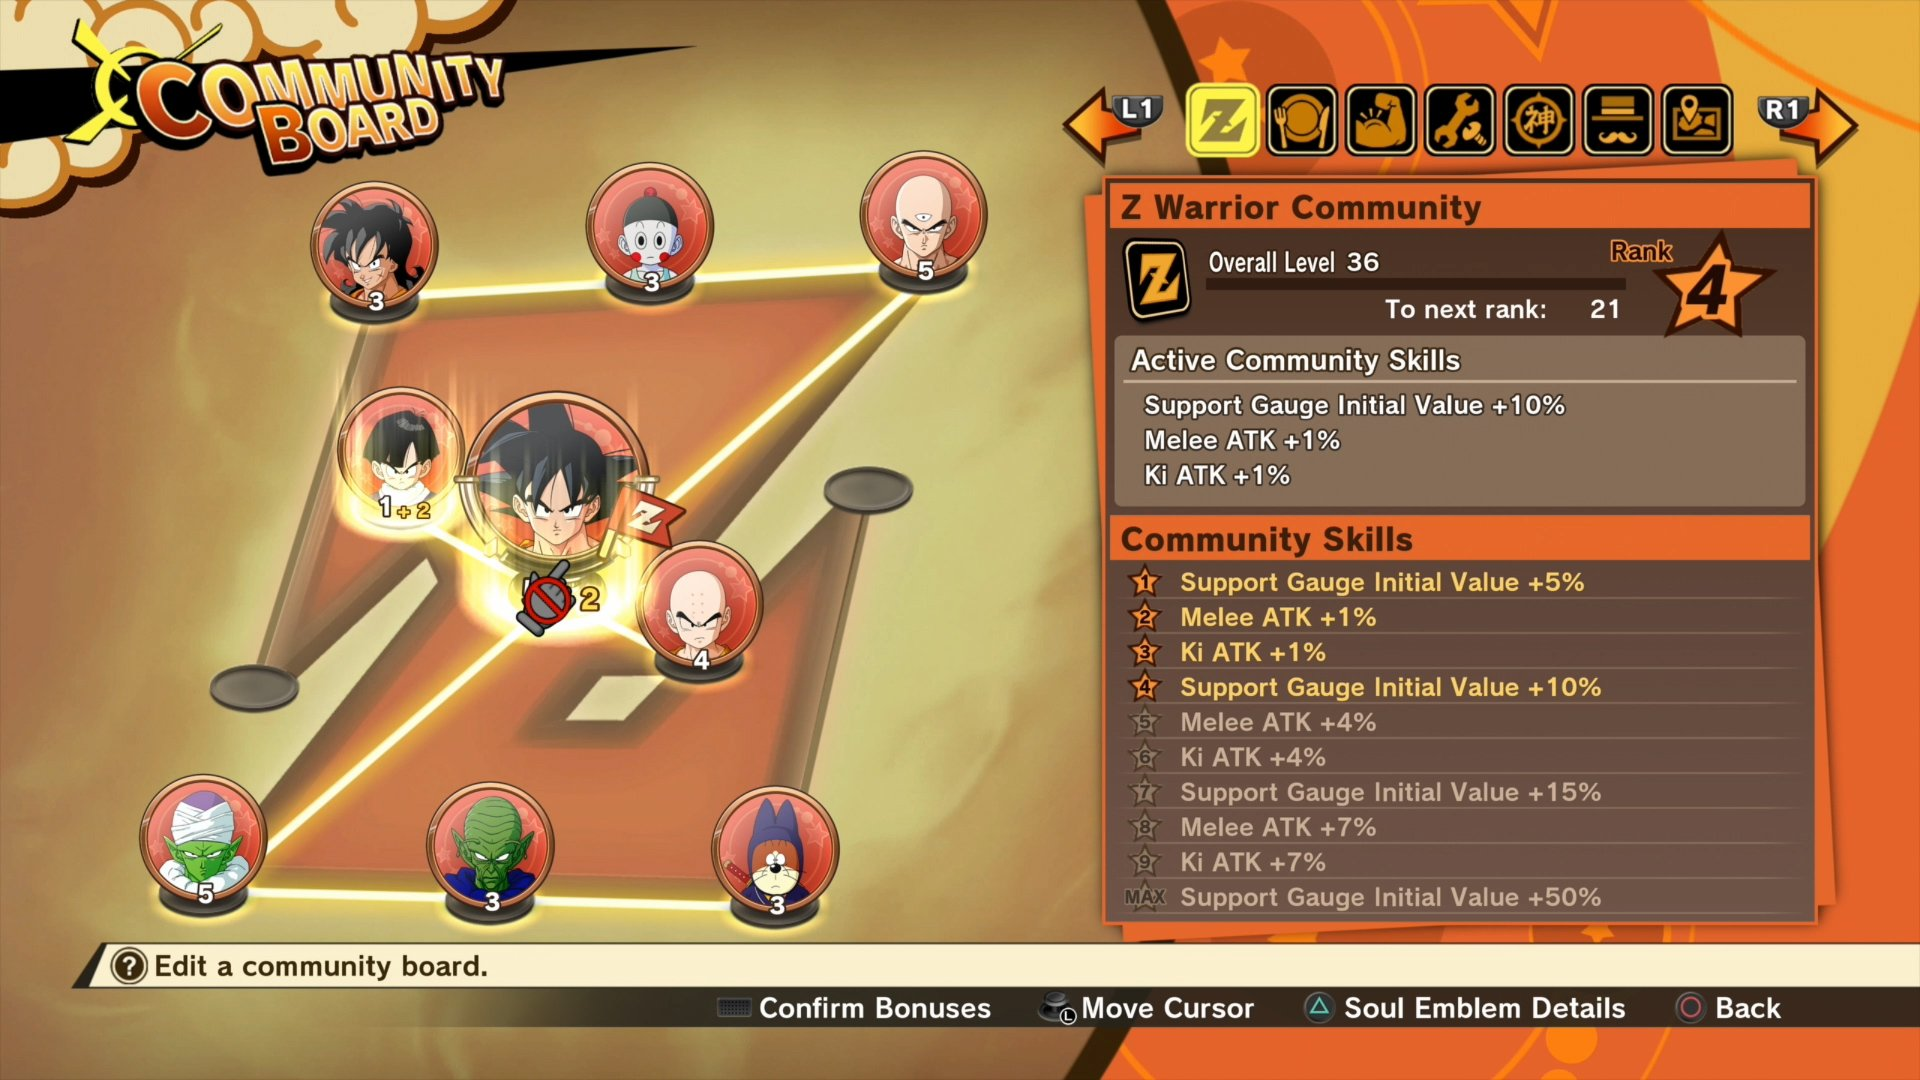 Dragon Ball Z: Kakarot - Community Board overview